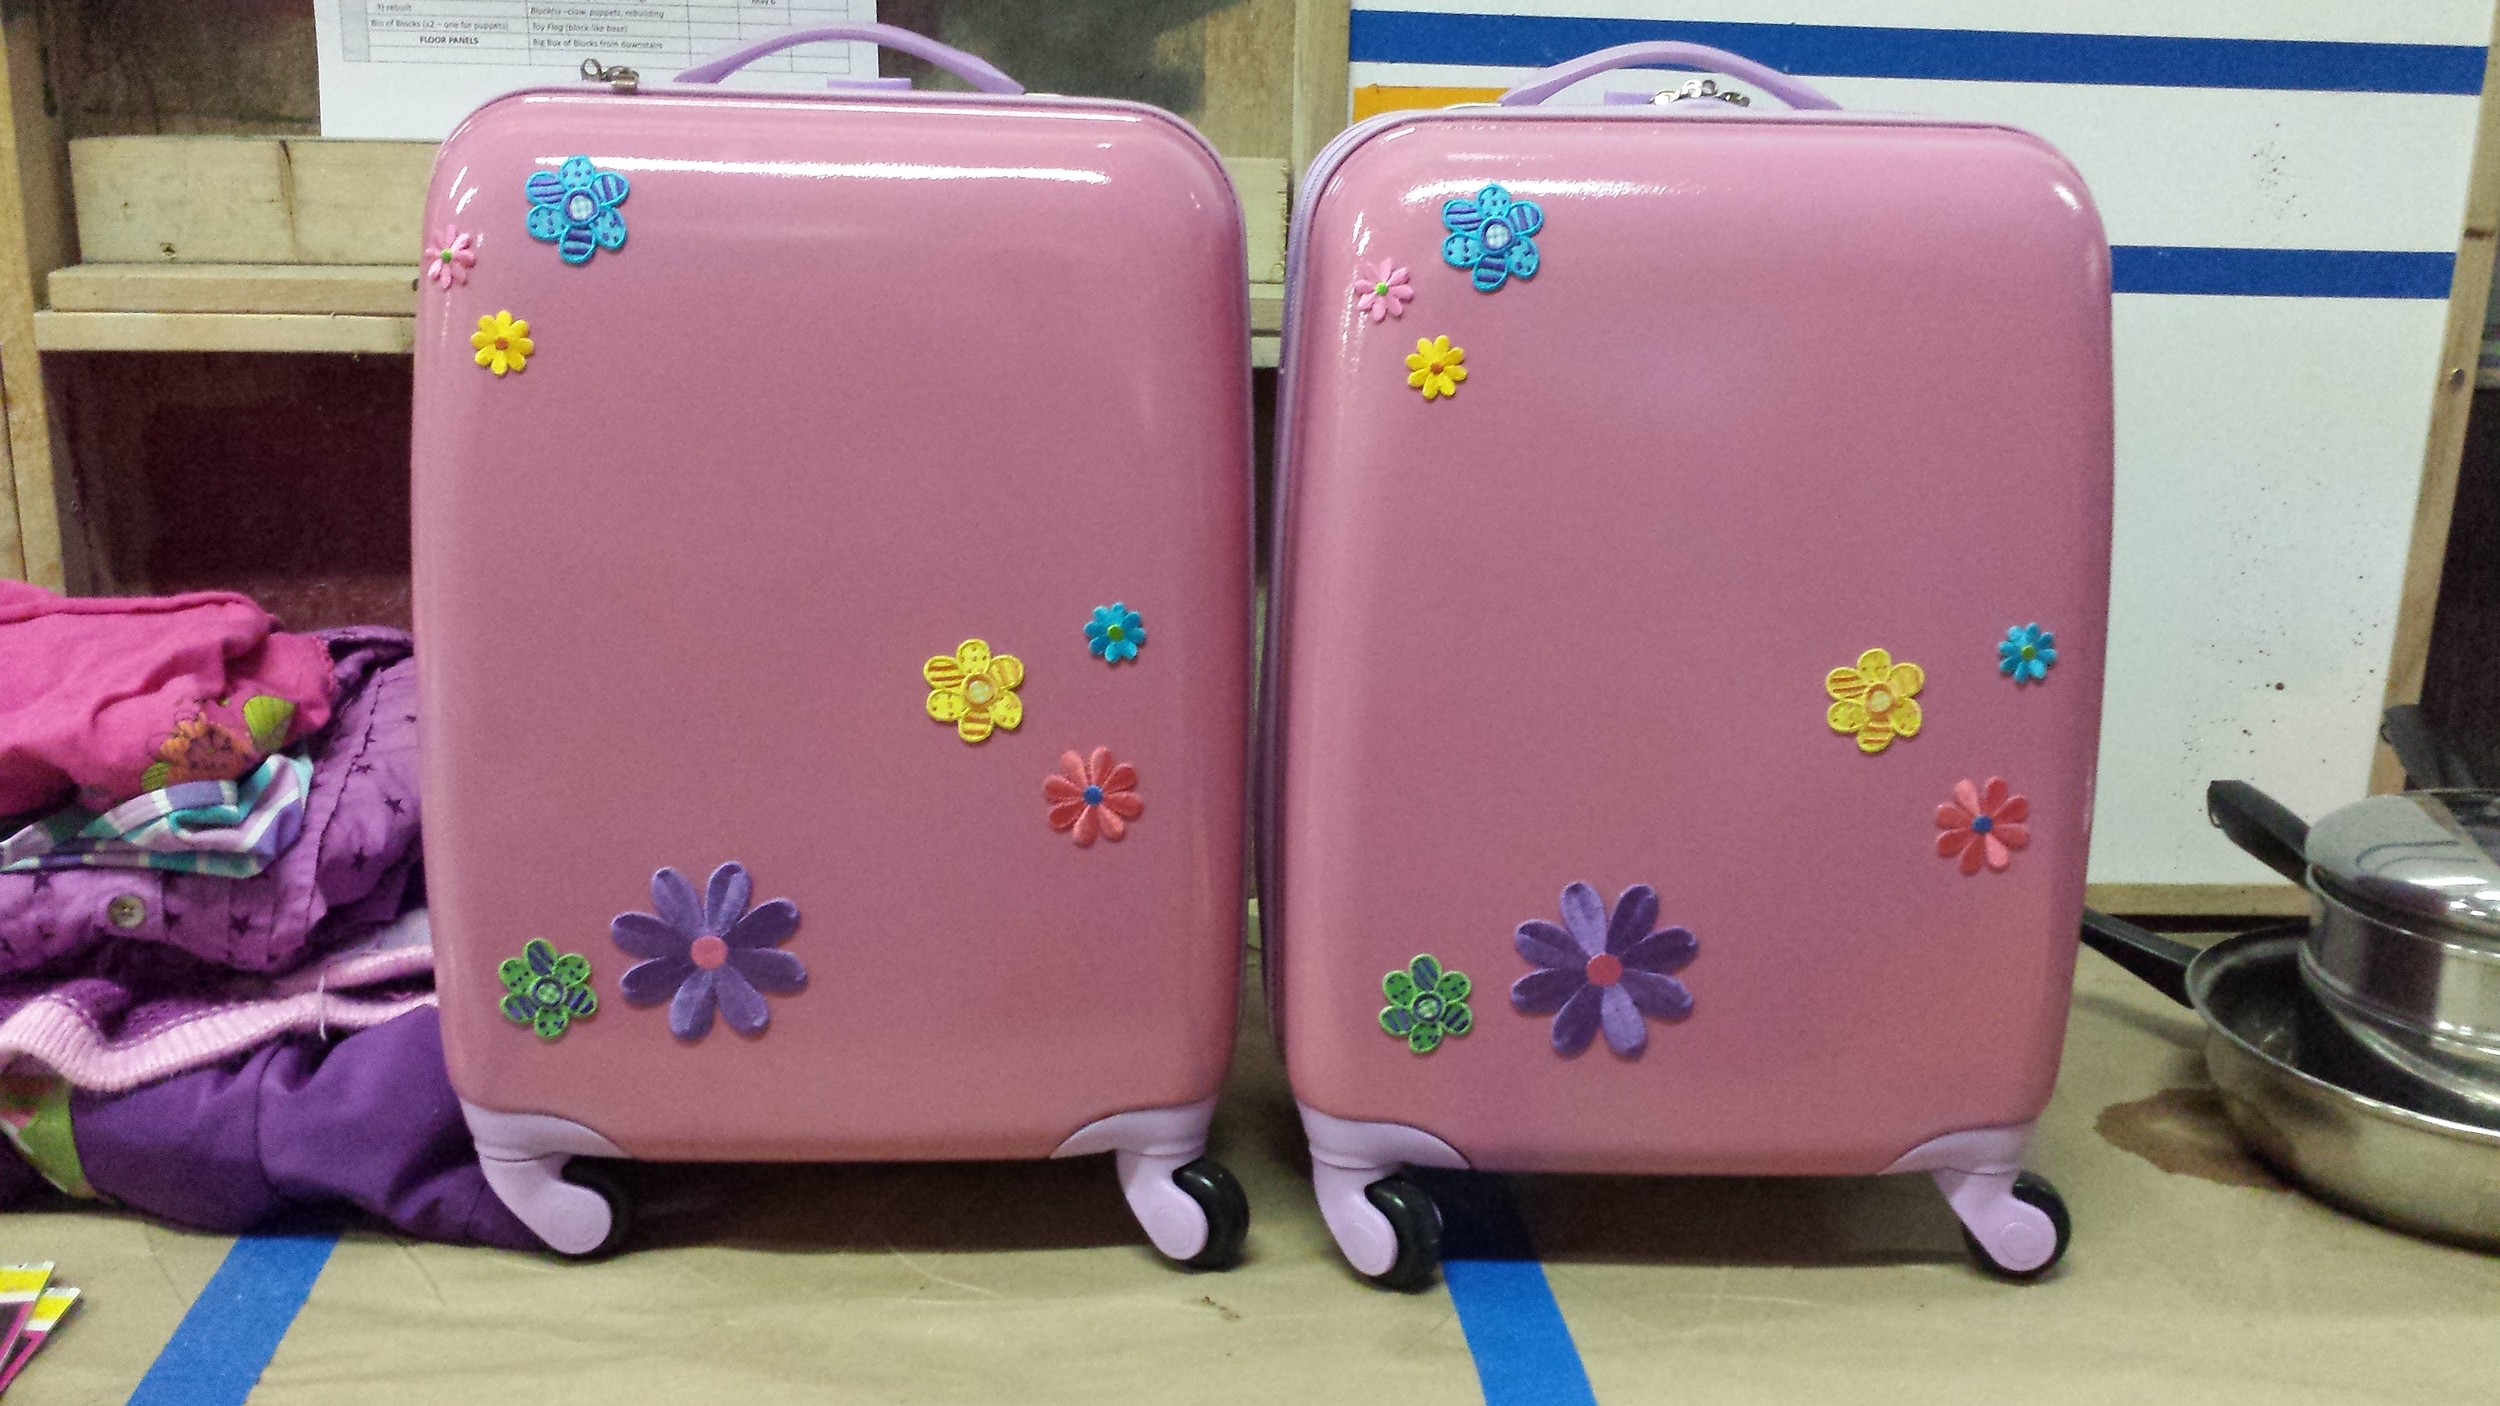 Decorated child's luggage, replica for continuity. (Playdate 2015)